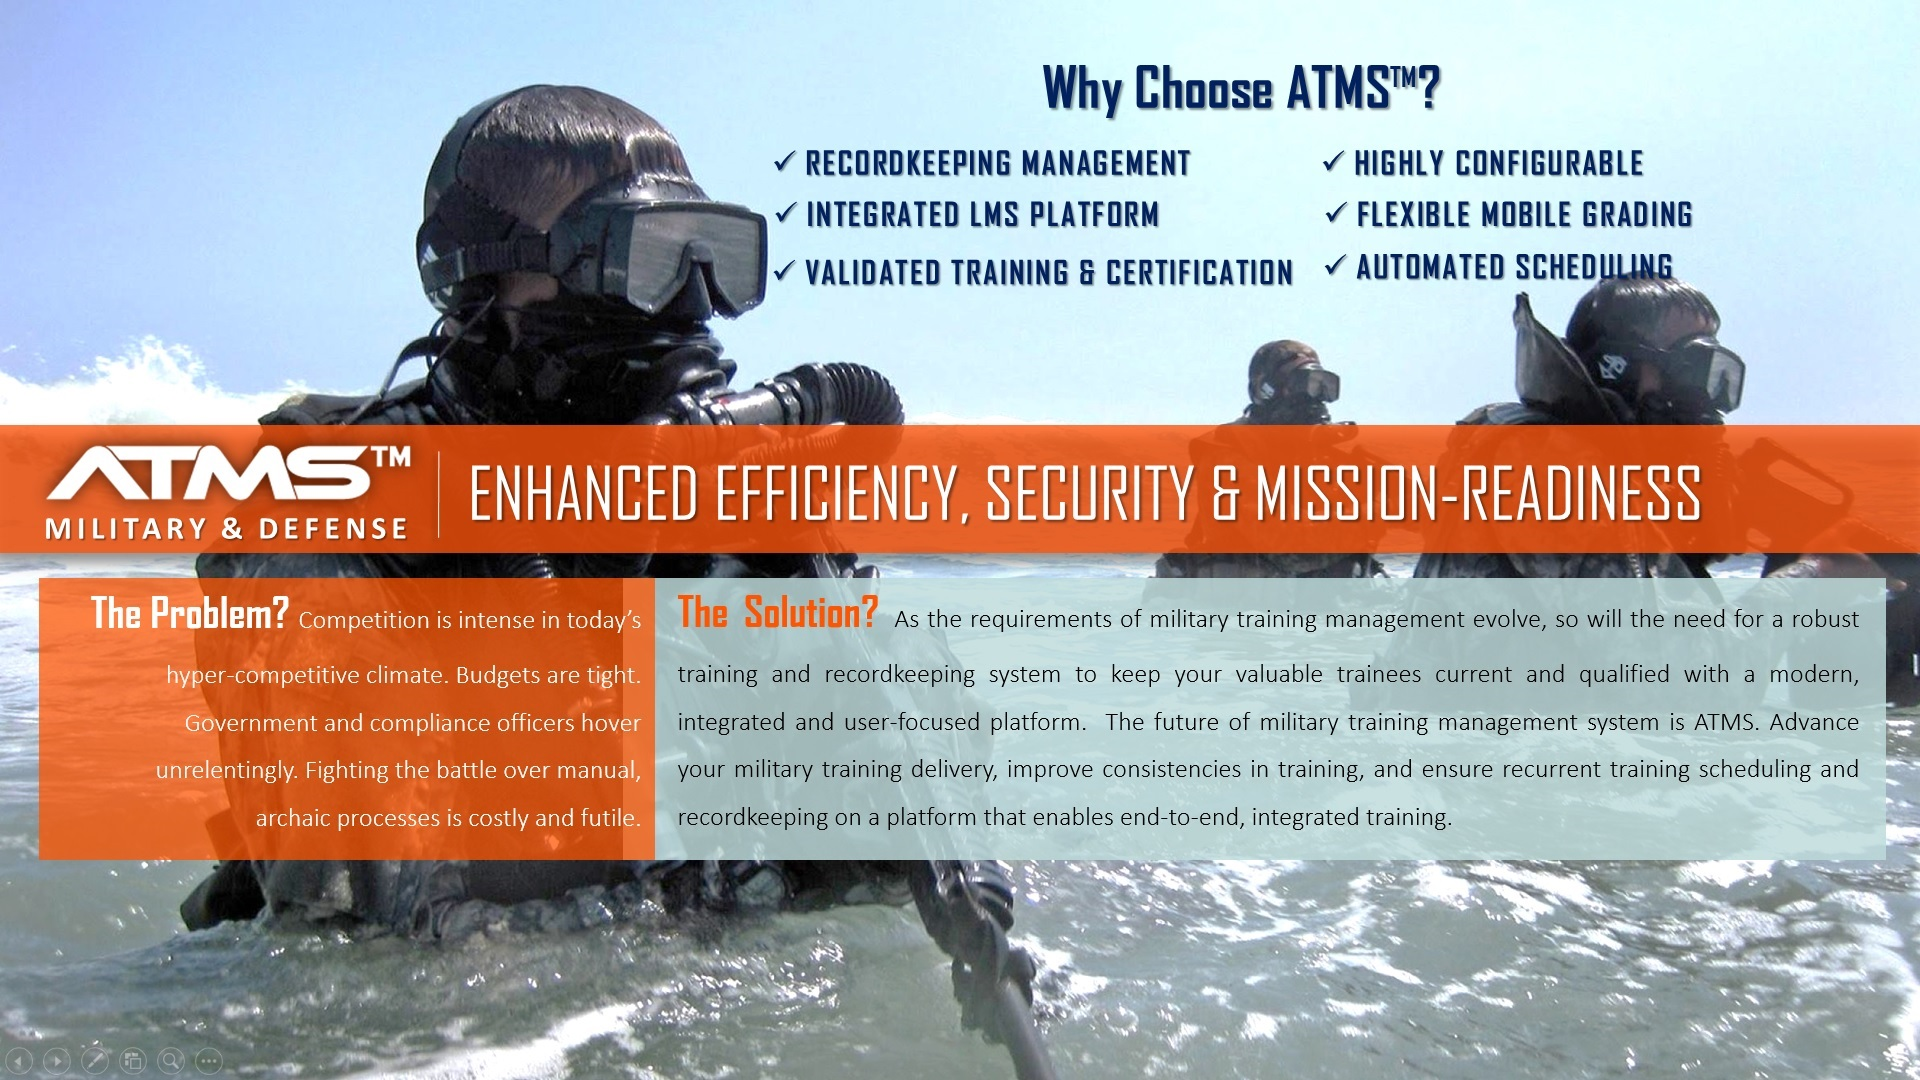 ATMS-Military-Slideshow-3